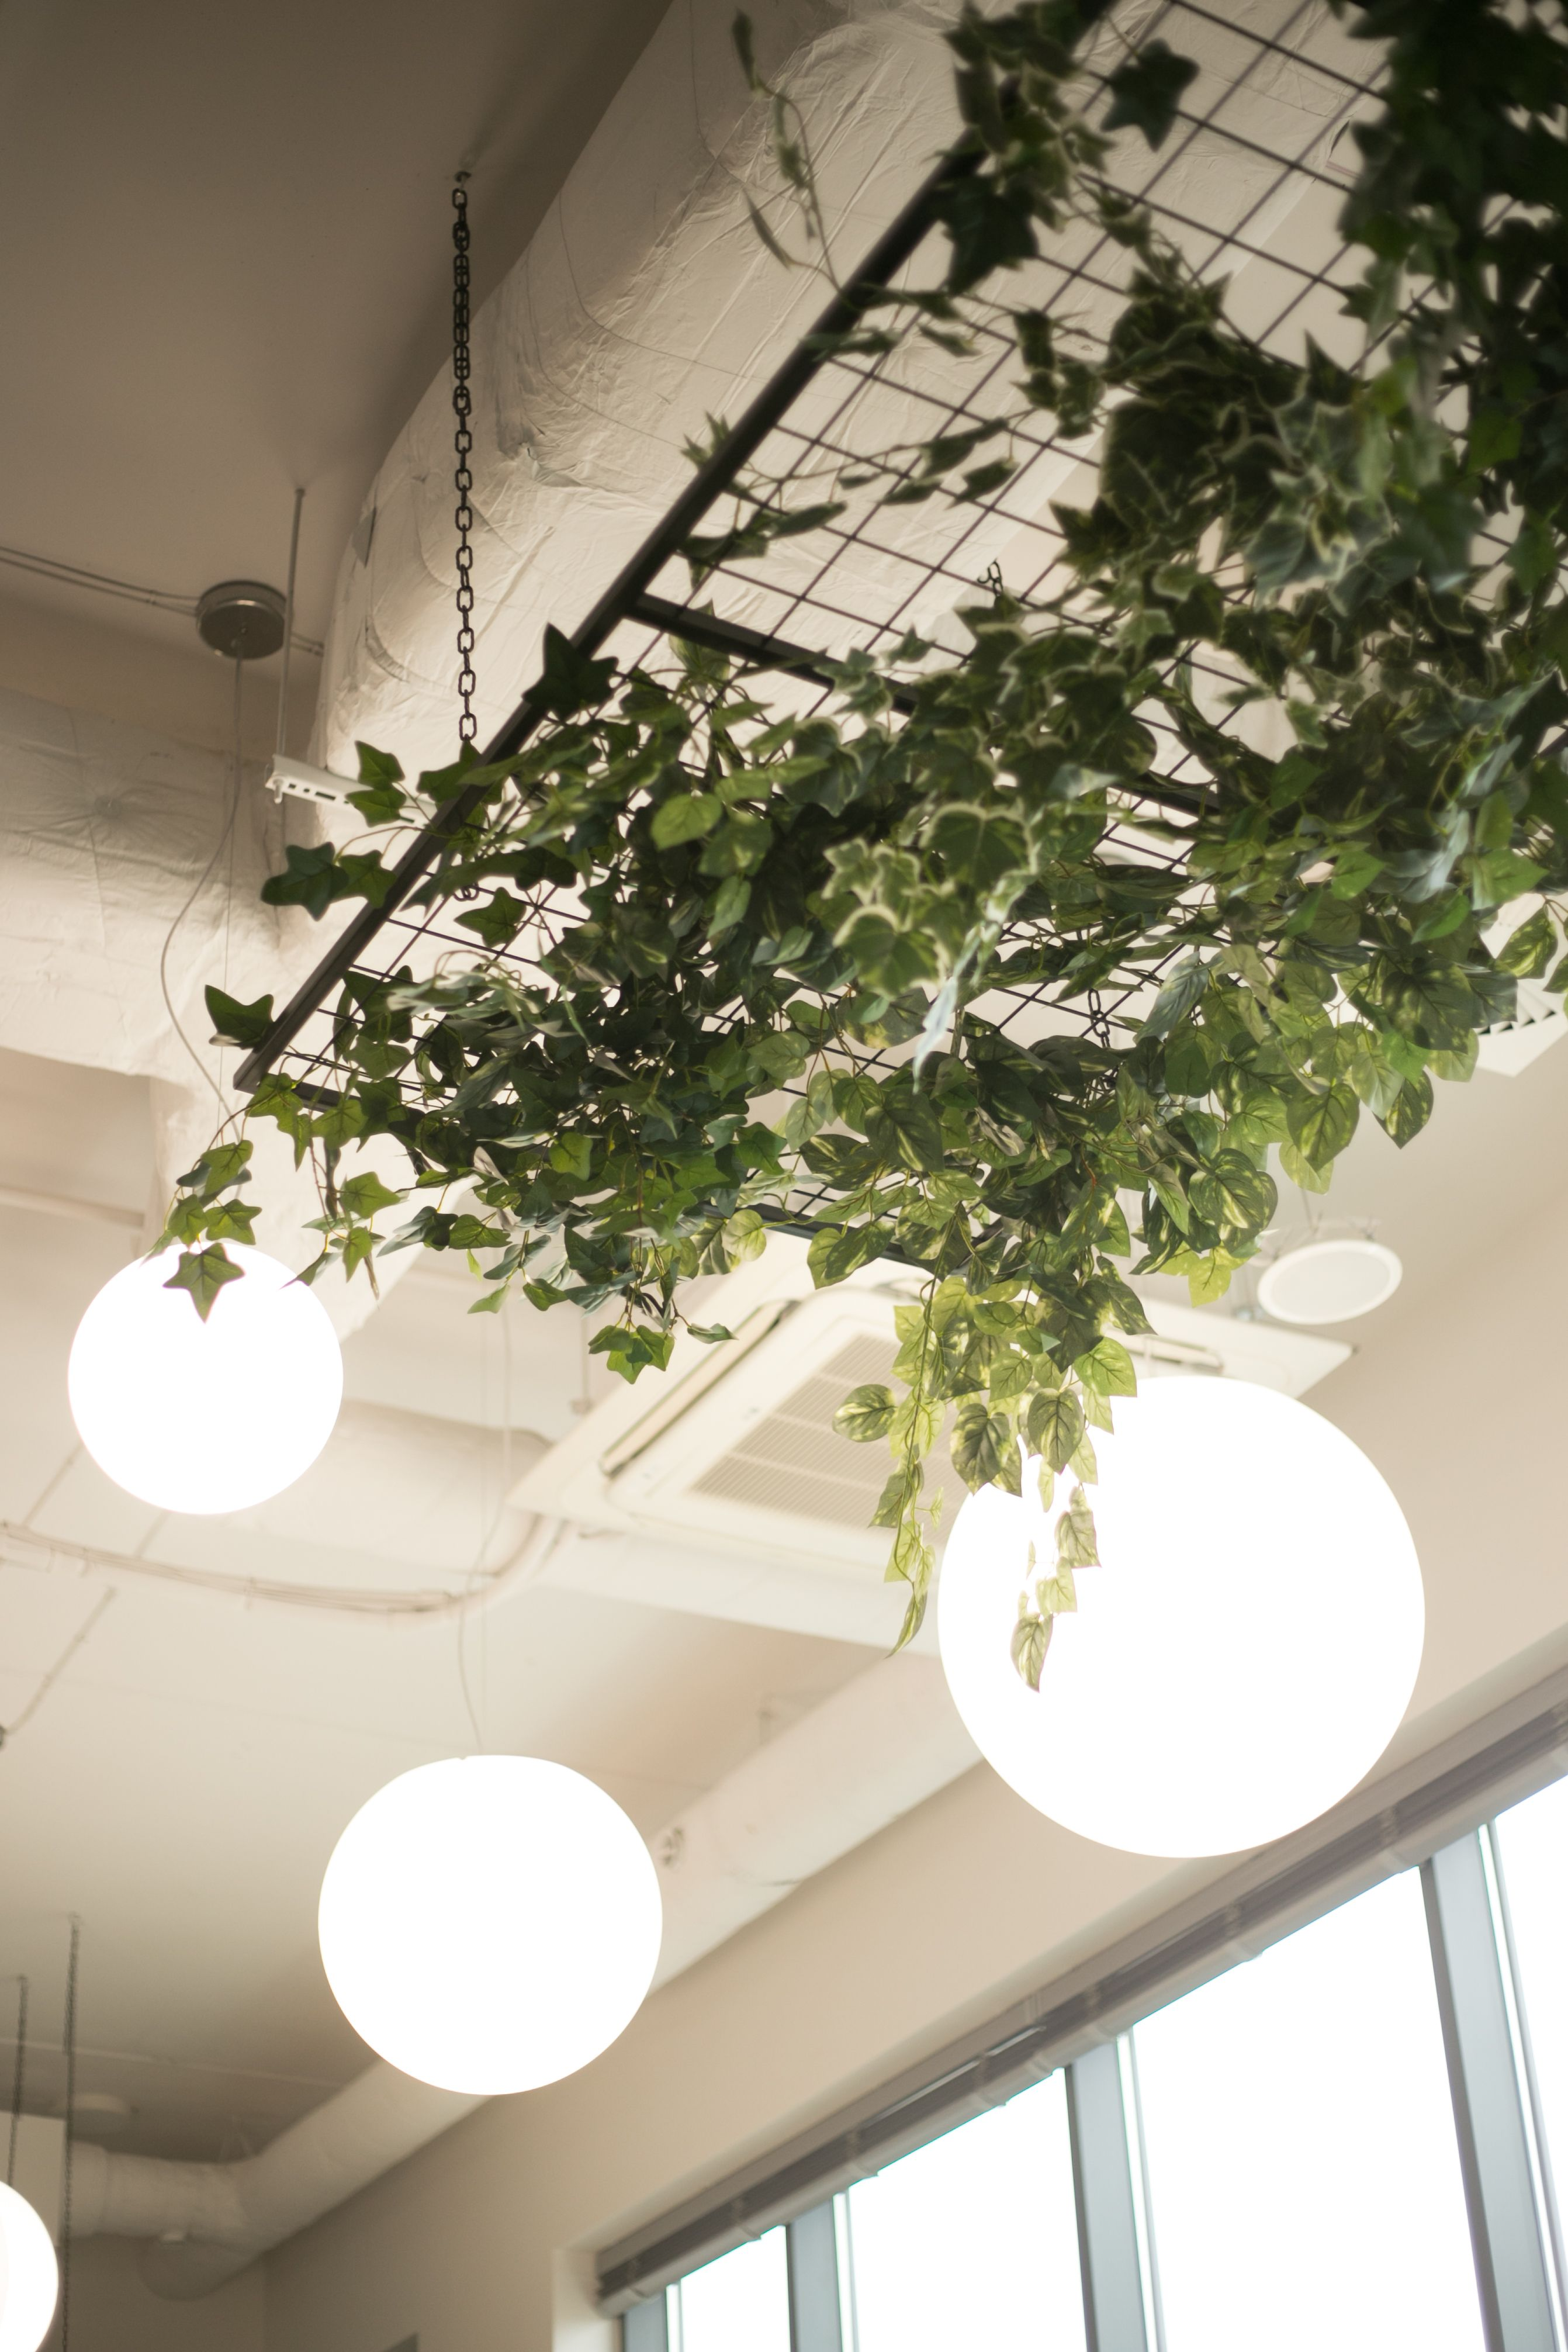 Hanging Grilles With Artificial Plants Hanging Plants Artificial Plants House Plants Decor